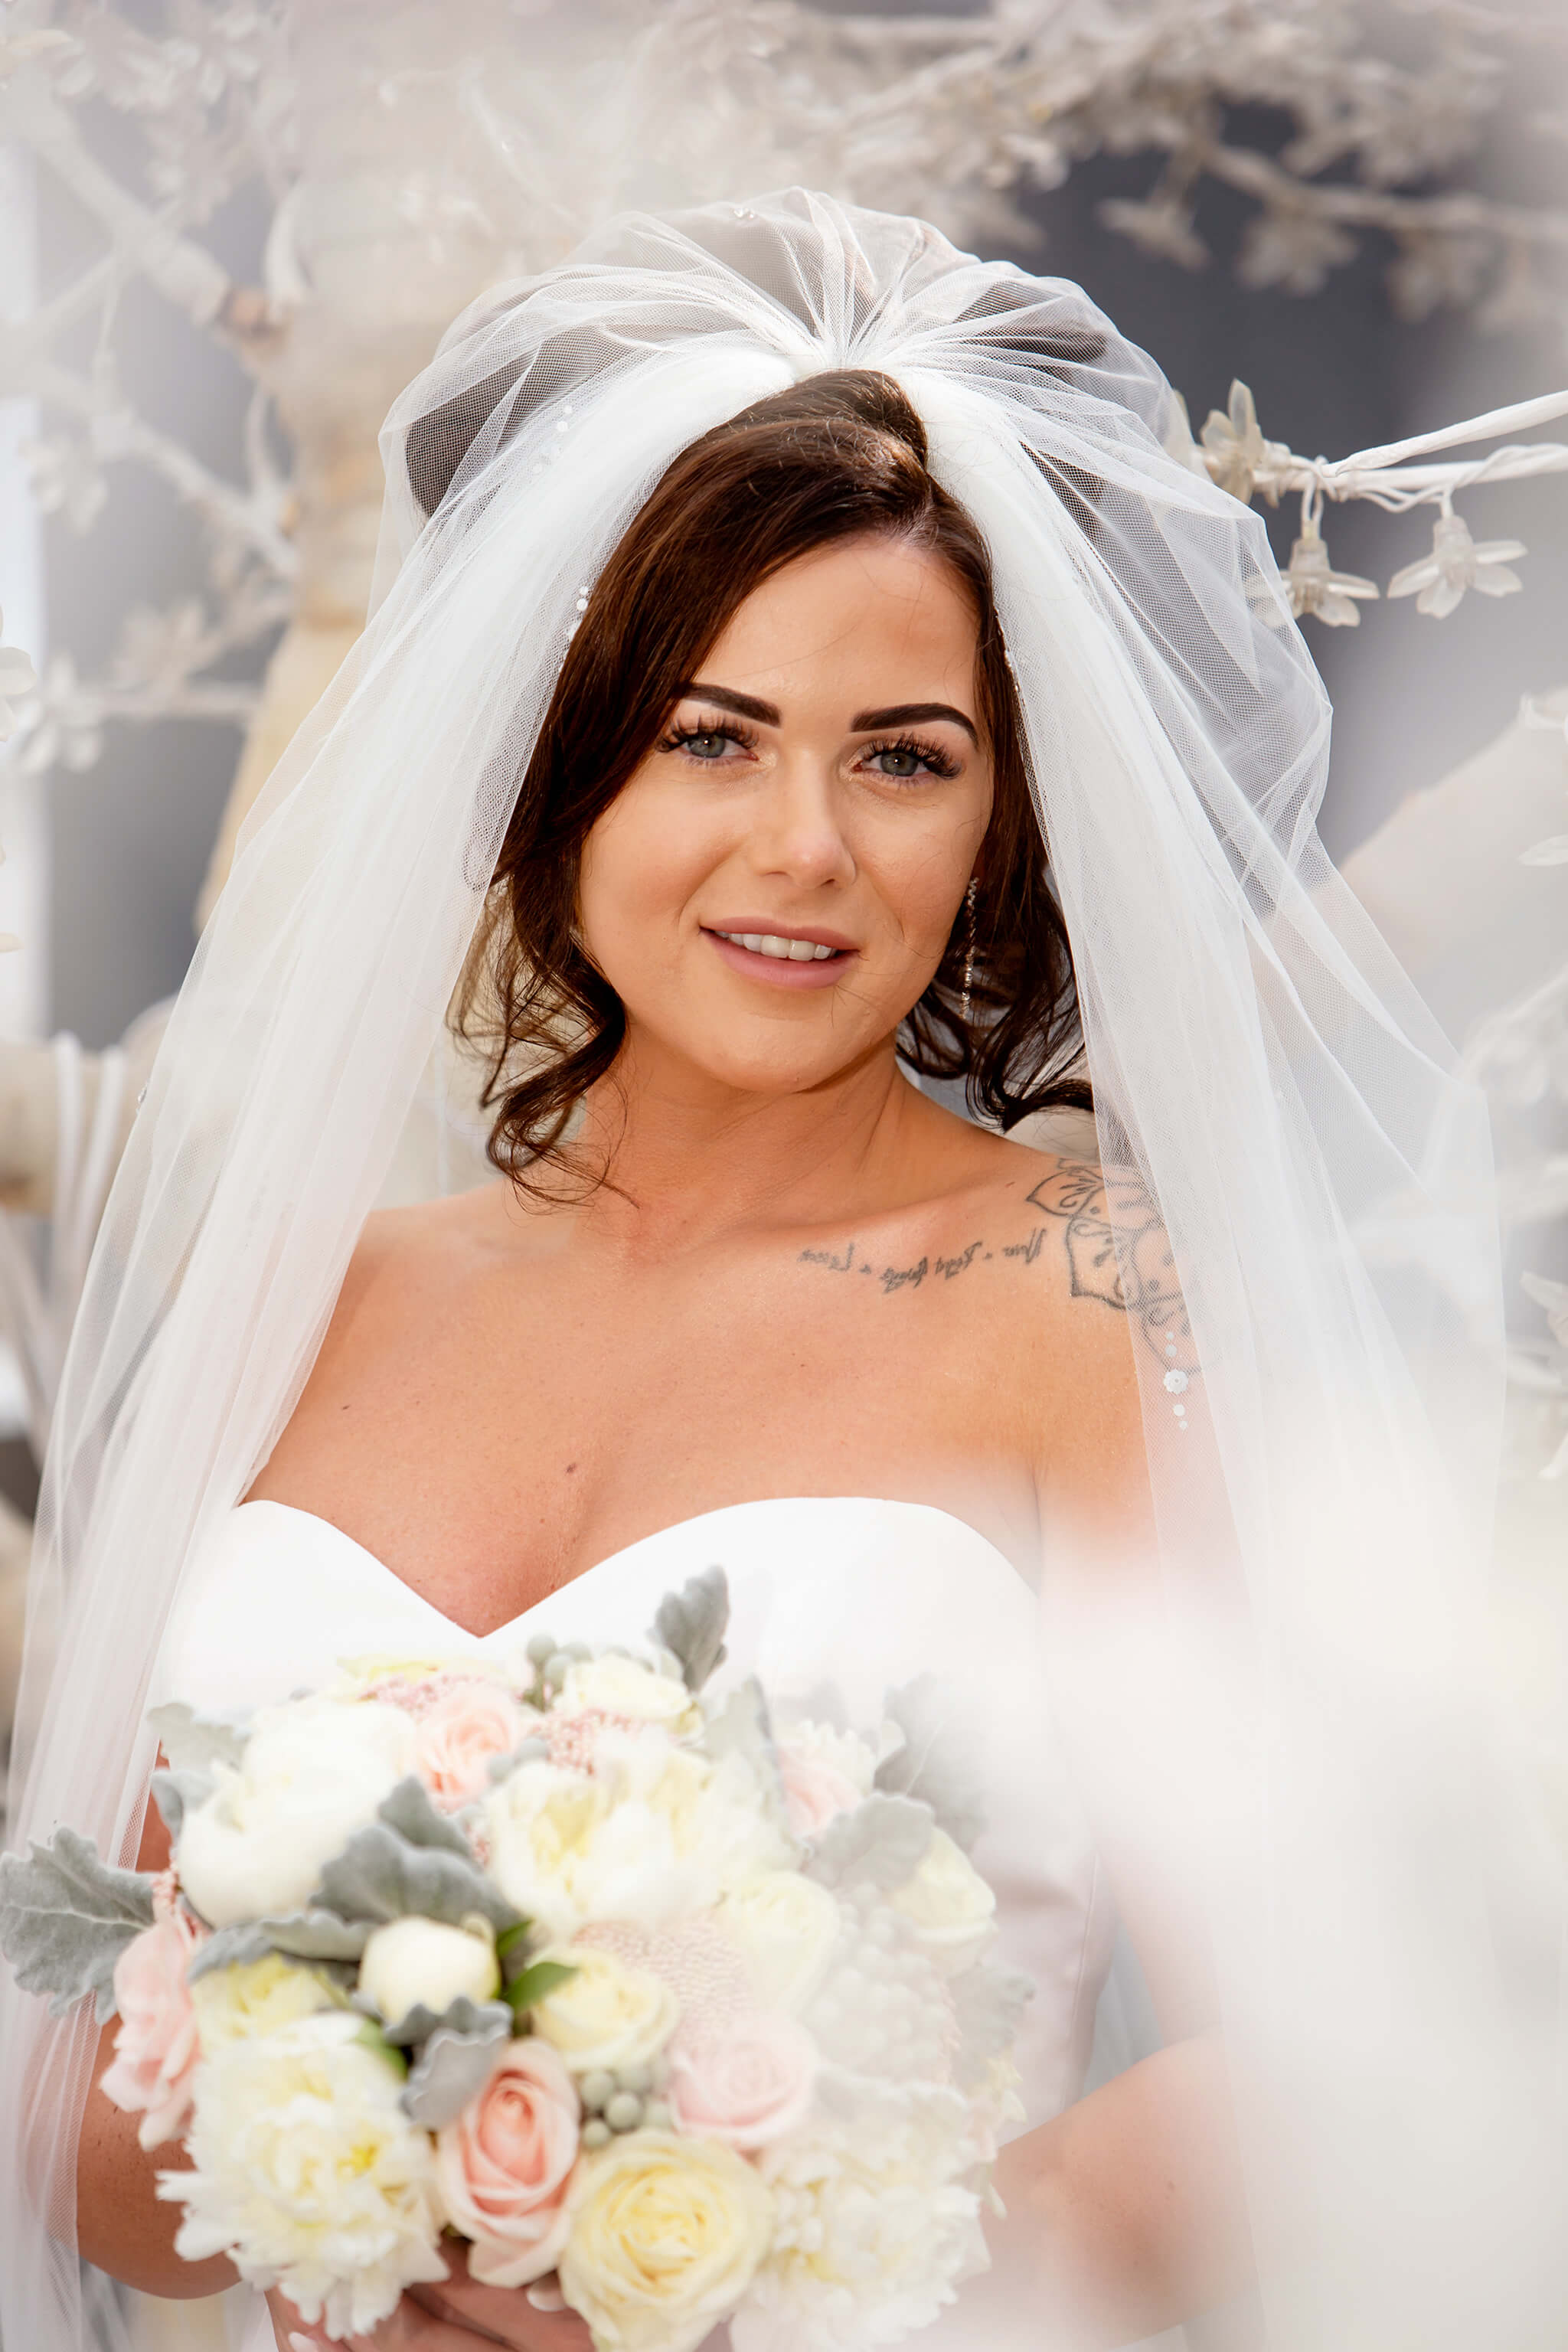 shankly-hotel-wedding-photographer-liverpool-stanbury-photography-021